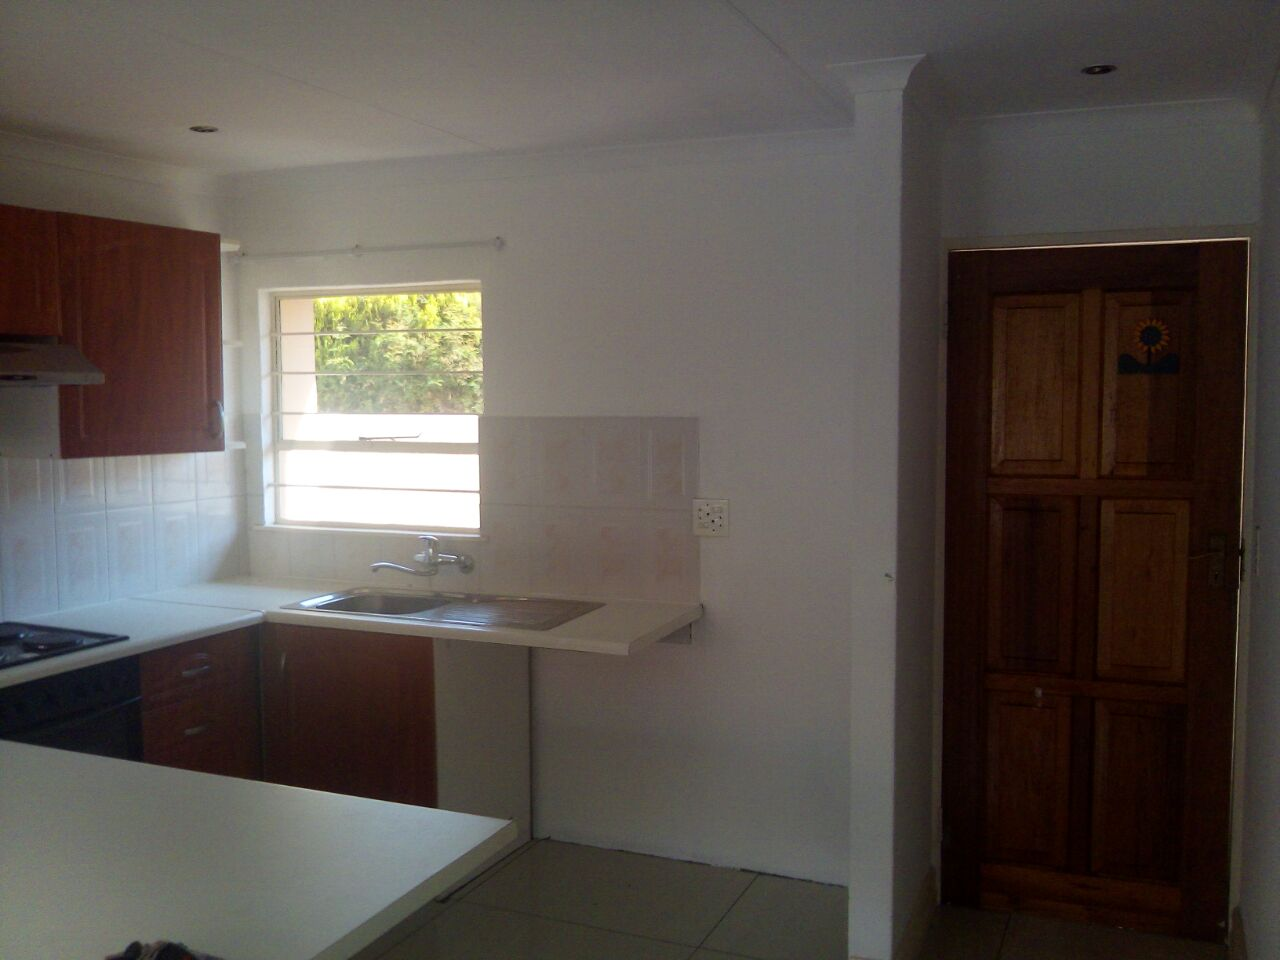 2 Bedroom Townhouse for sale in Sunninghill ENT0074719 : photo#2